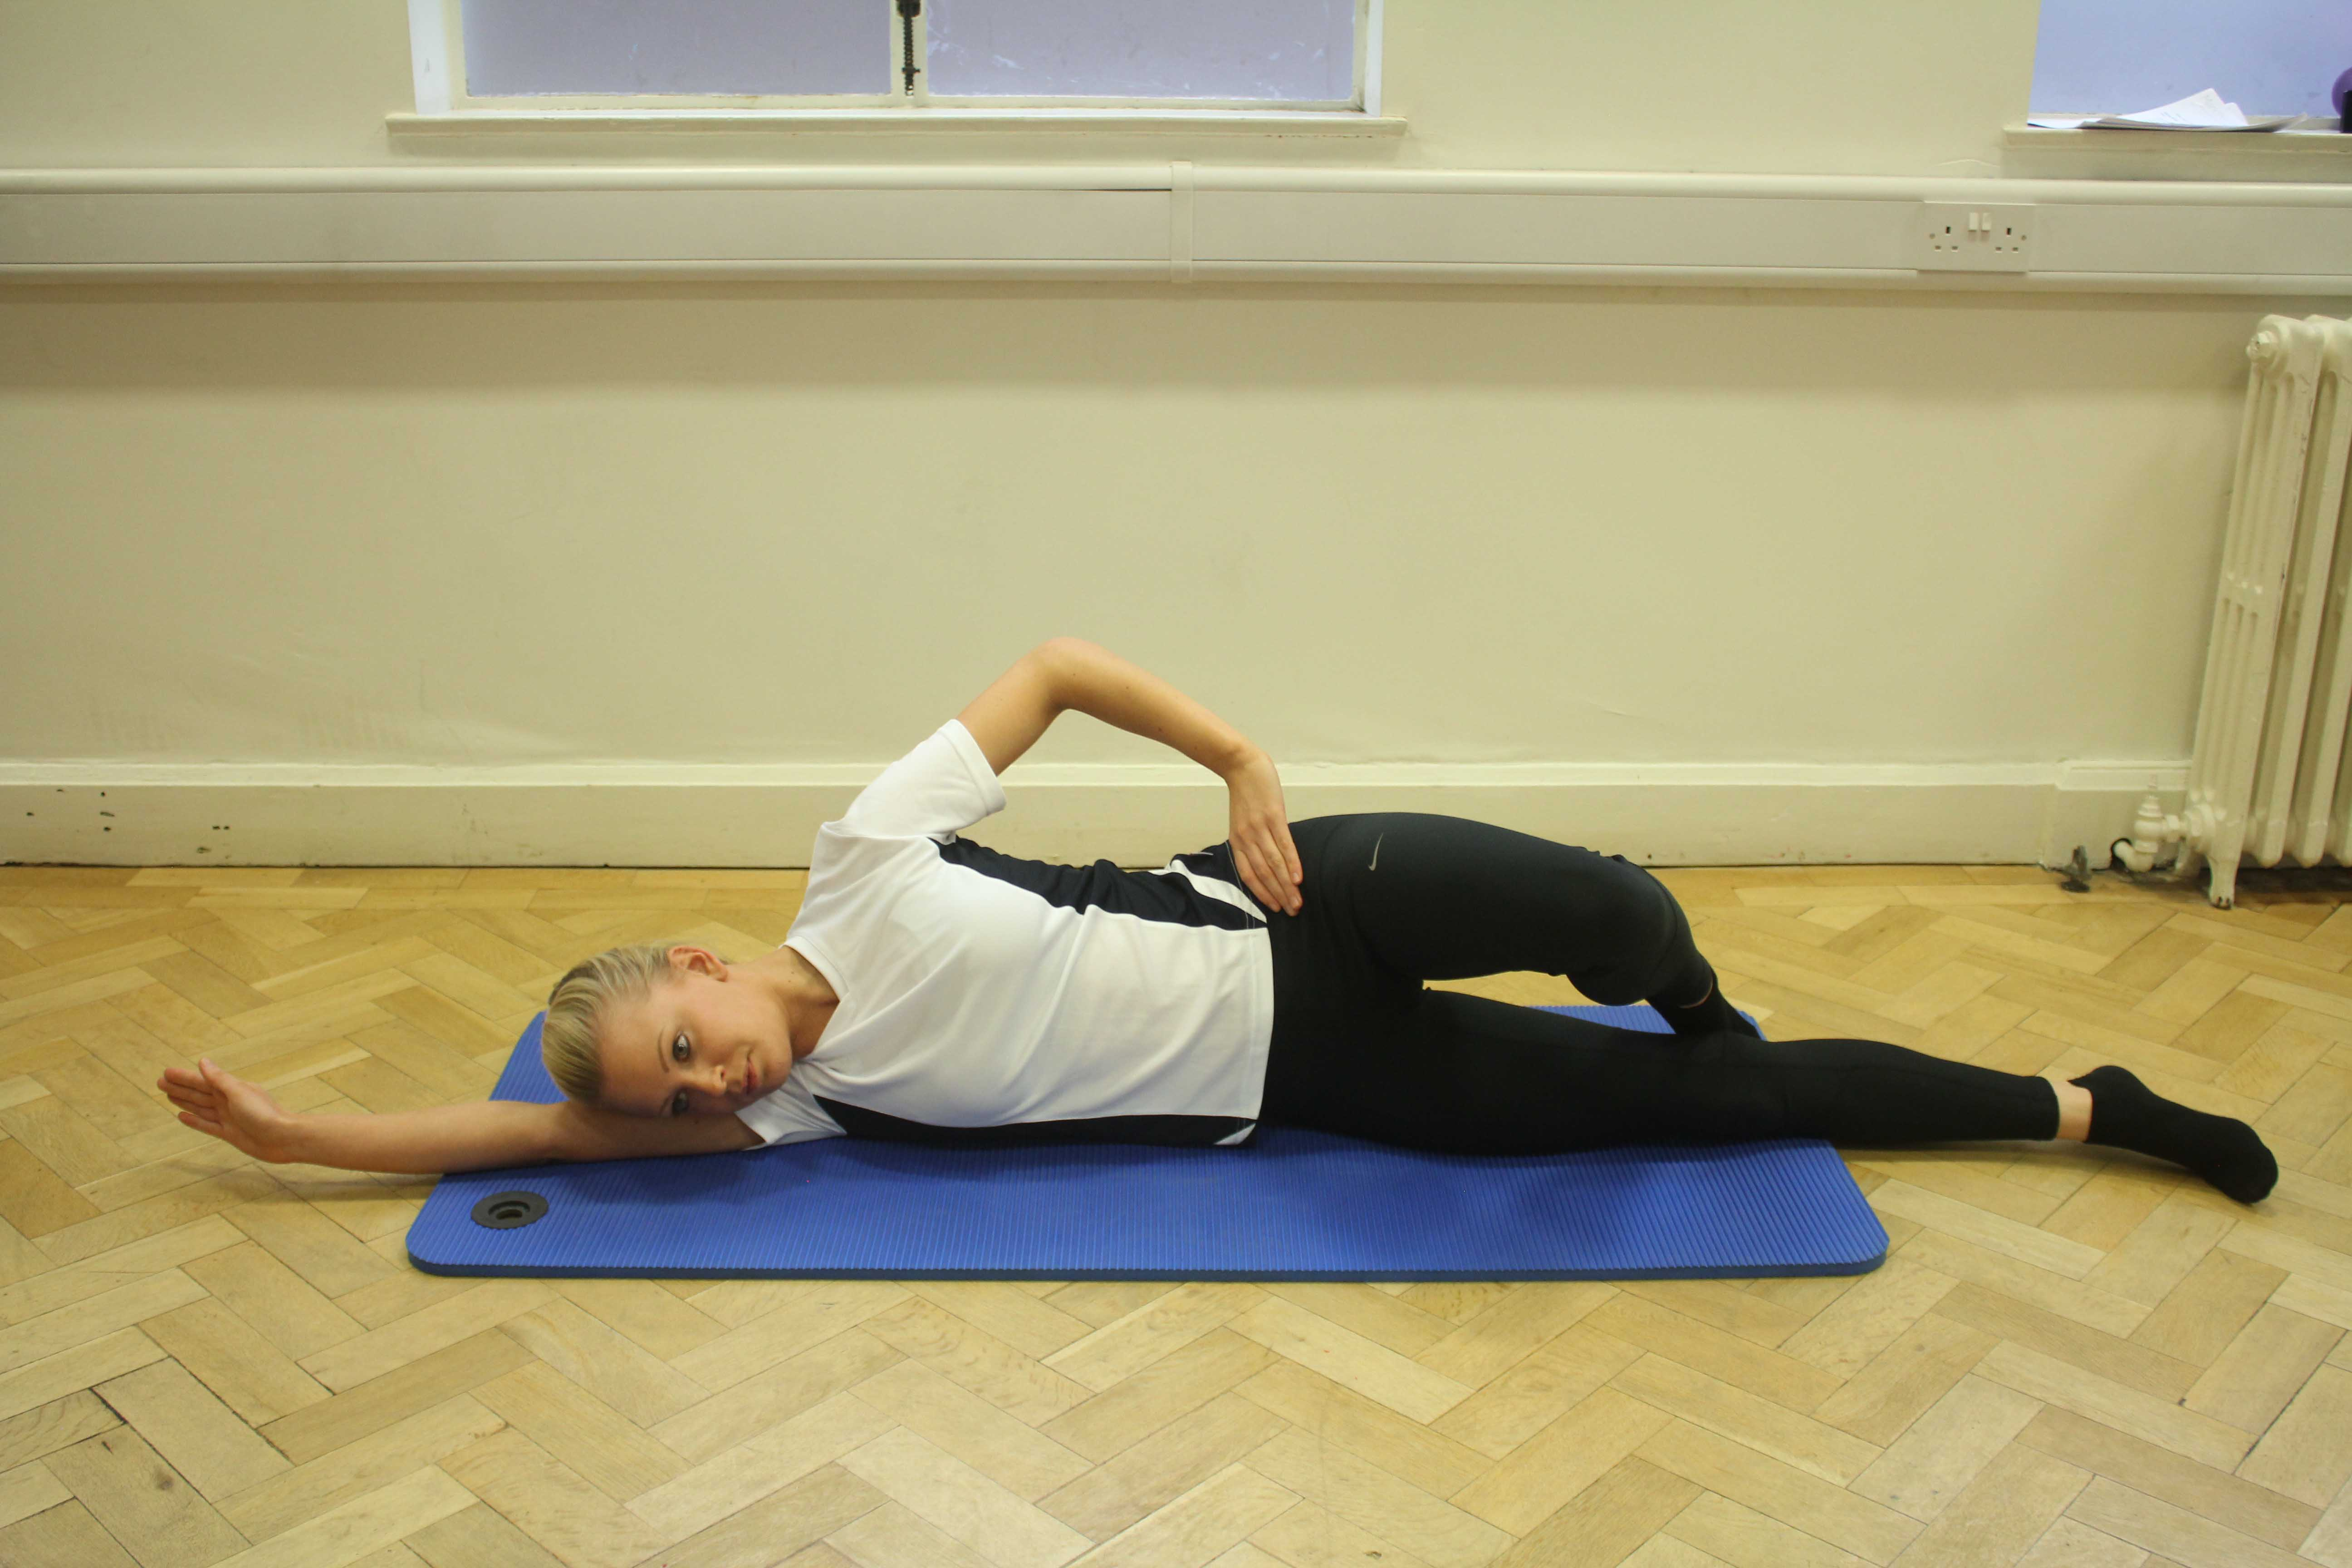 Pilates based exercise can help with gluteal buttock strains